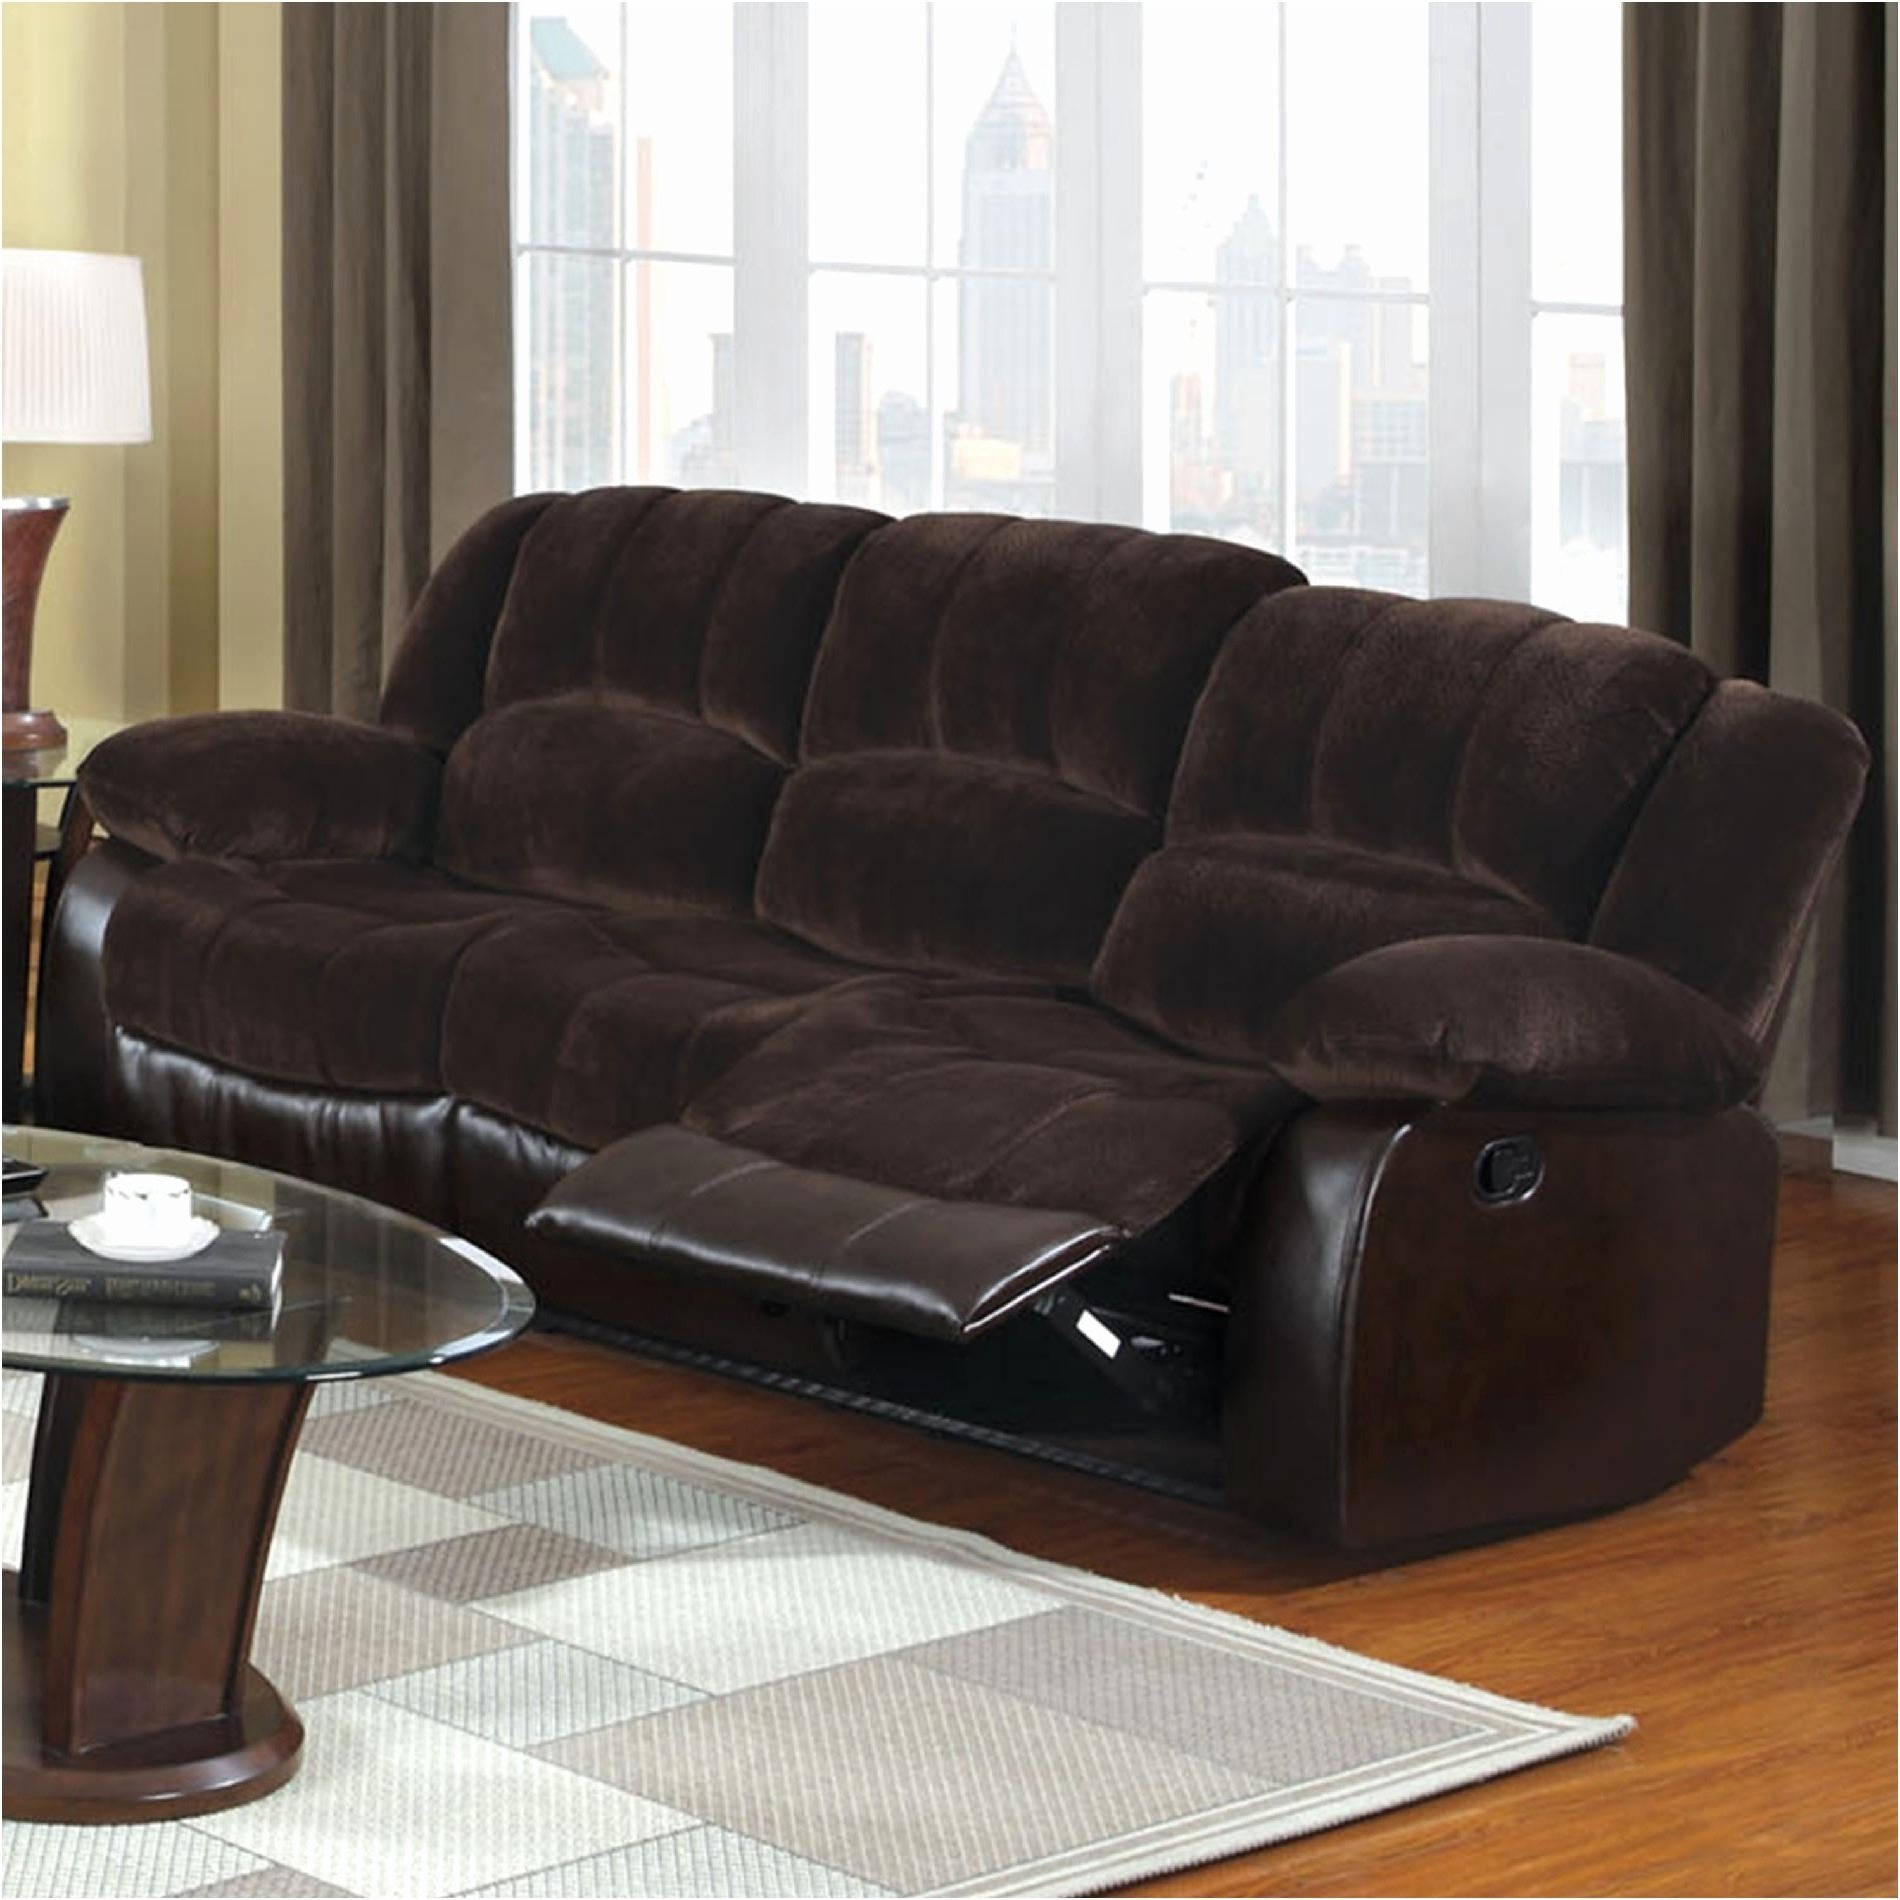 Fashionable Sears Sofas Inside Fresh Sears Leather Sofa New – Intuisiblog (View 6 of 20)